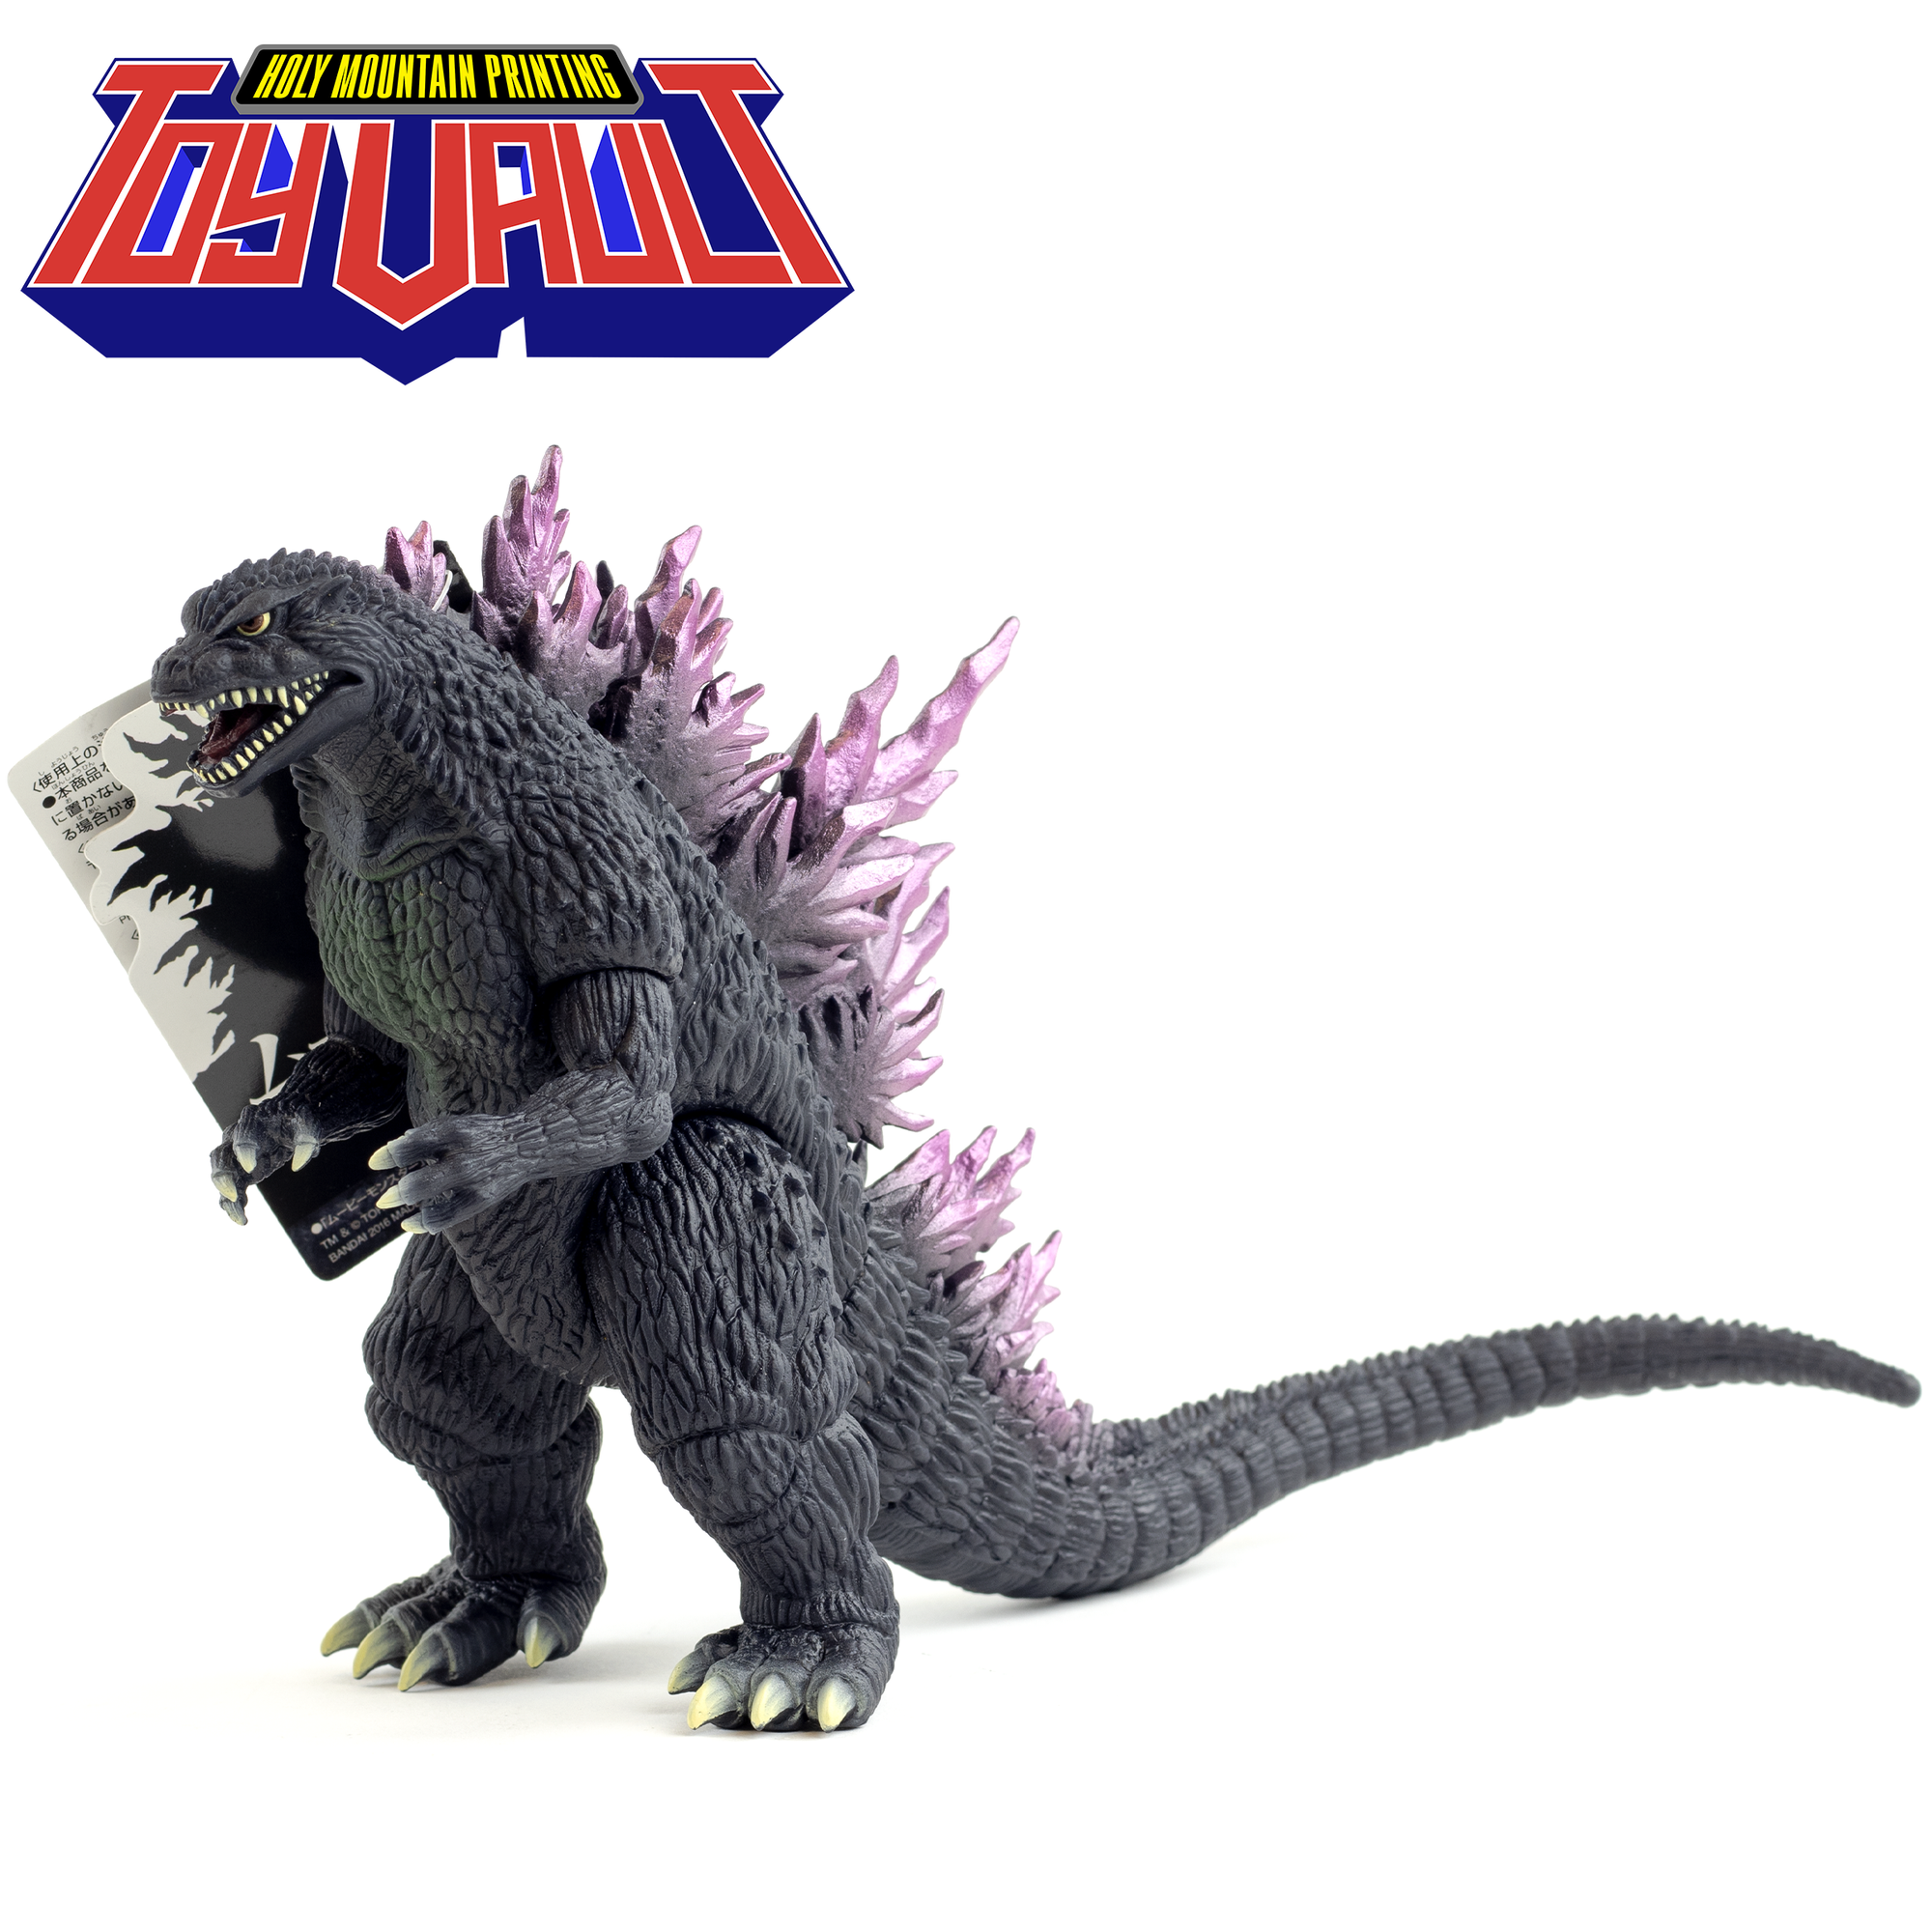 BANDAI - Movie Monster: Millennium Godzilla FIGURE